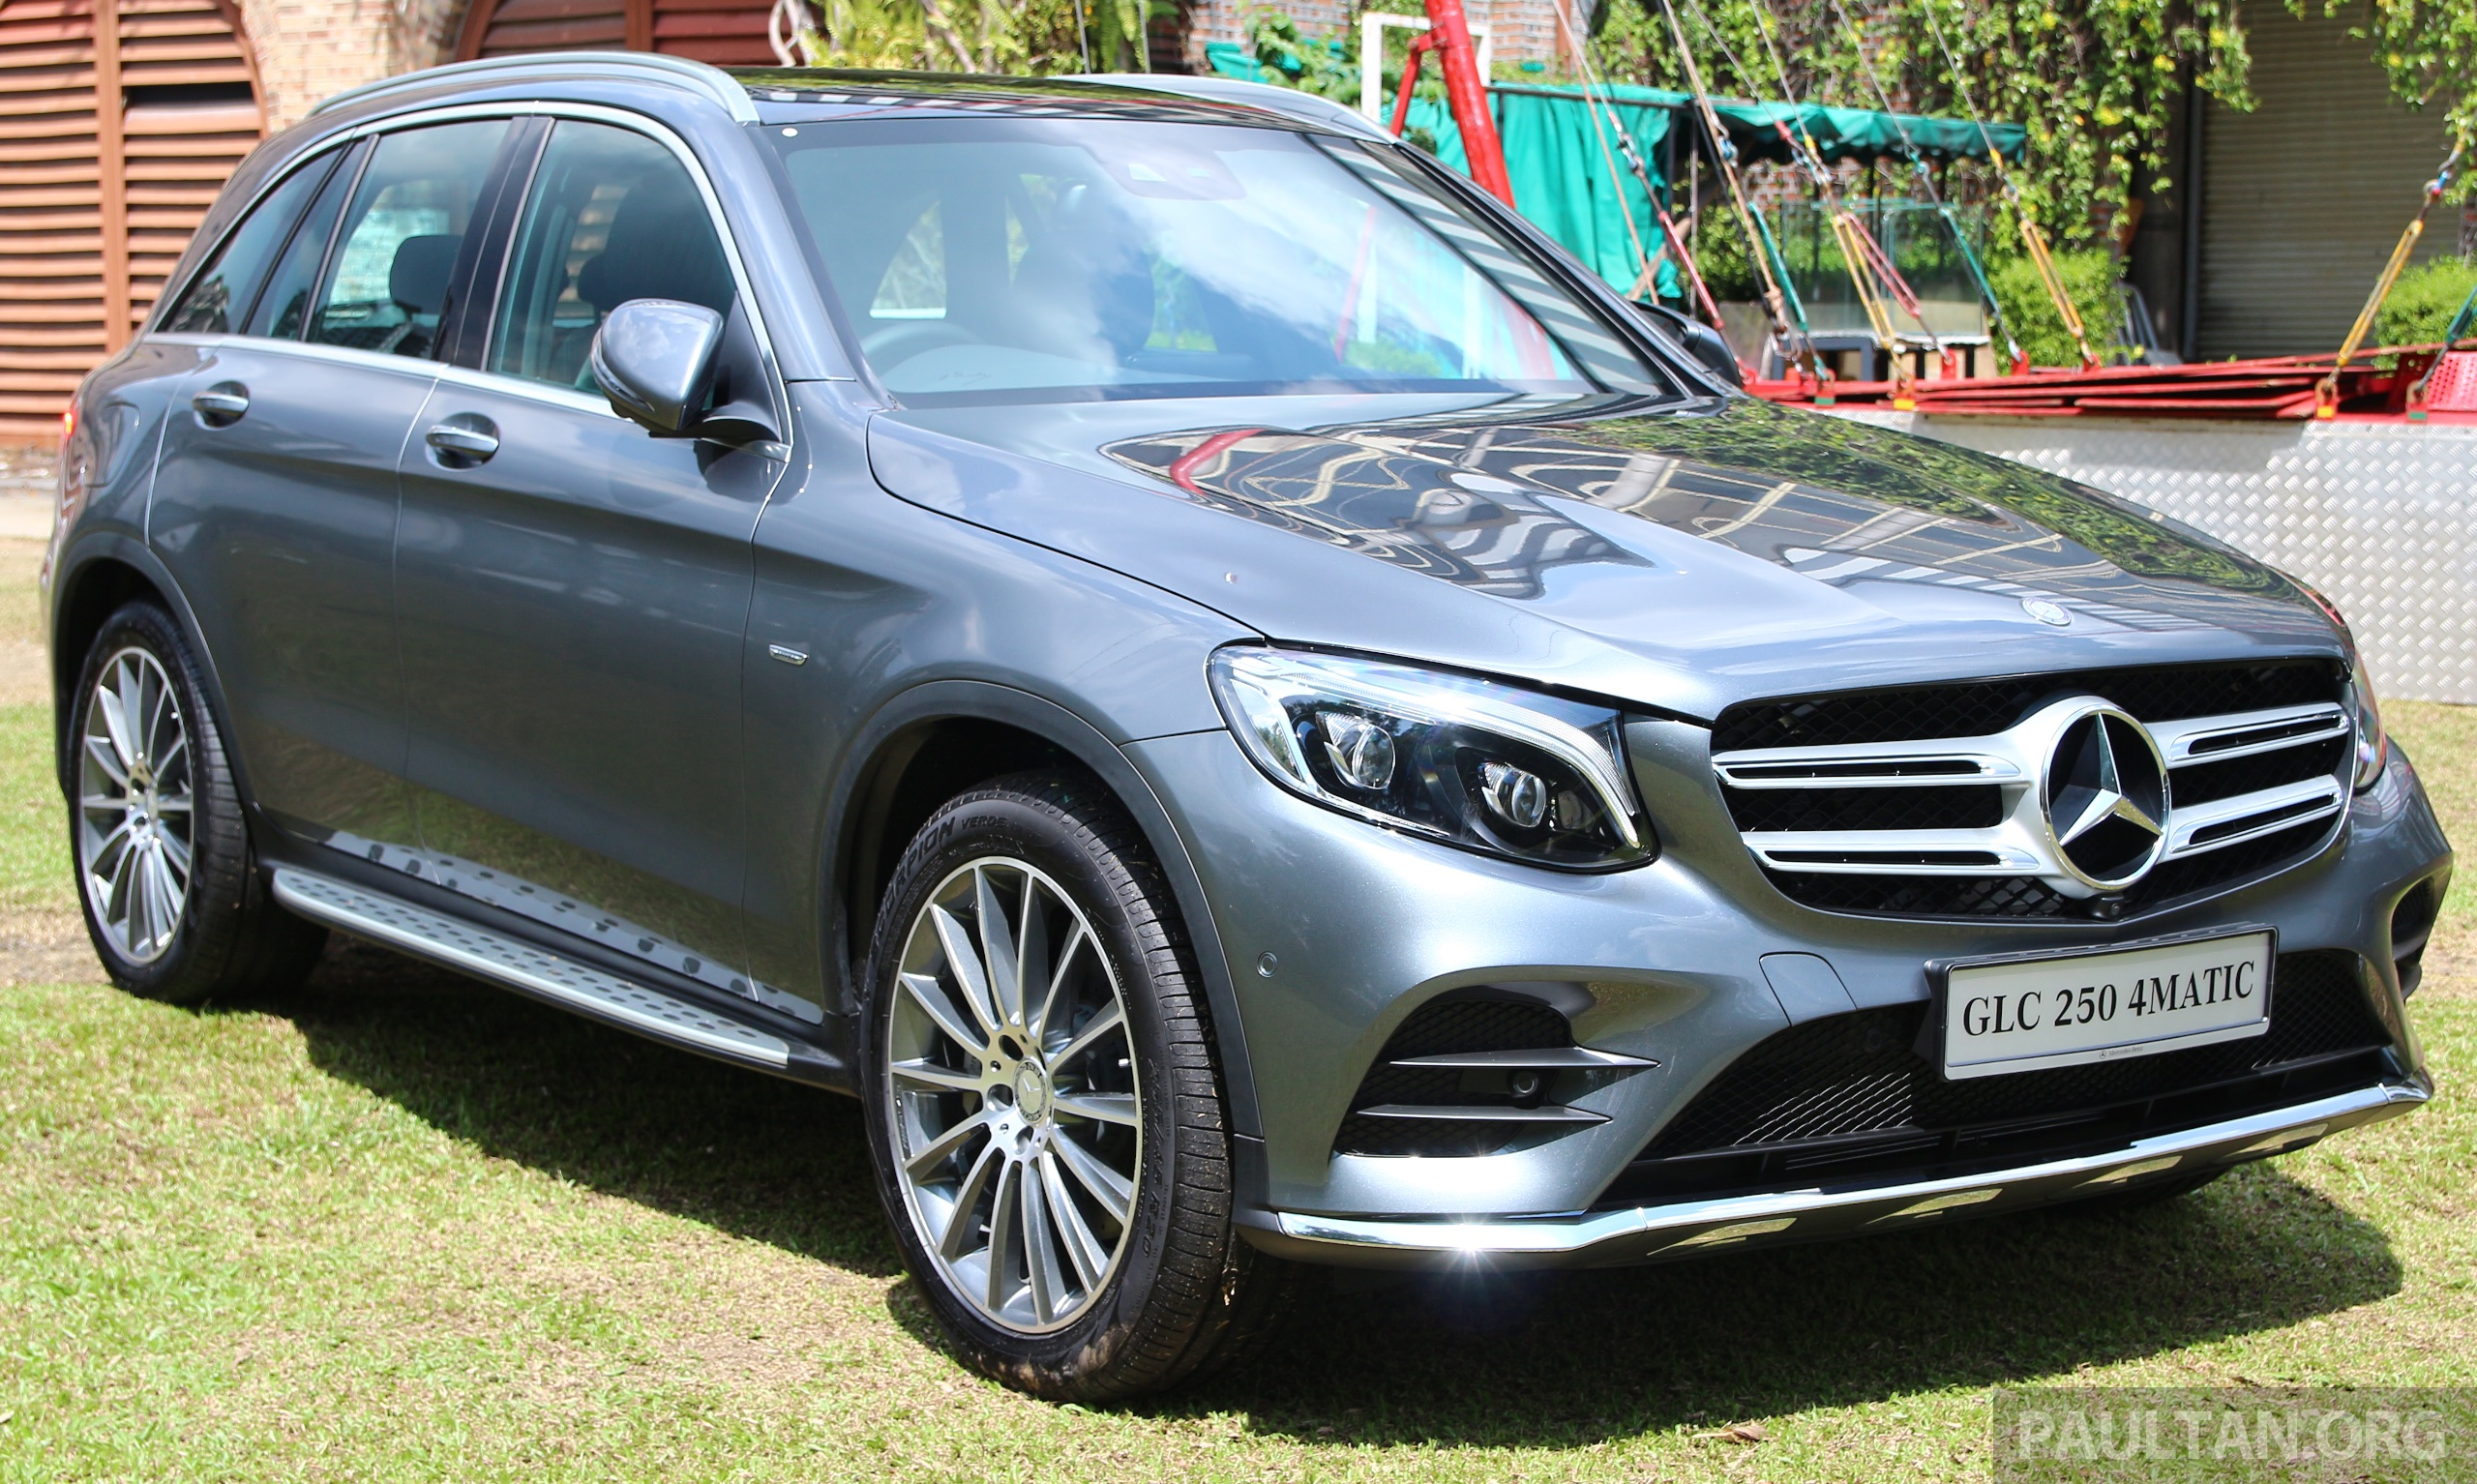 mercedes benz glc with 2016 Mercedes Benz Glc 250 4matic Edition 1 015 on mercedesofknoxville likewise Mercedes Benz Glc Review A Crossover For Keen Drivers also Features Safety And Equipment as well Mercedes Erlkoenig Erwischt Spy Shot Mercedes Benz C Klasse Facelift 2018 likewise Watch.